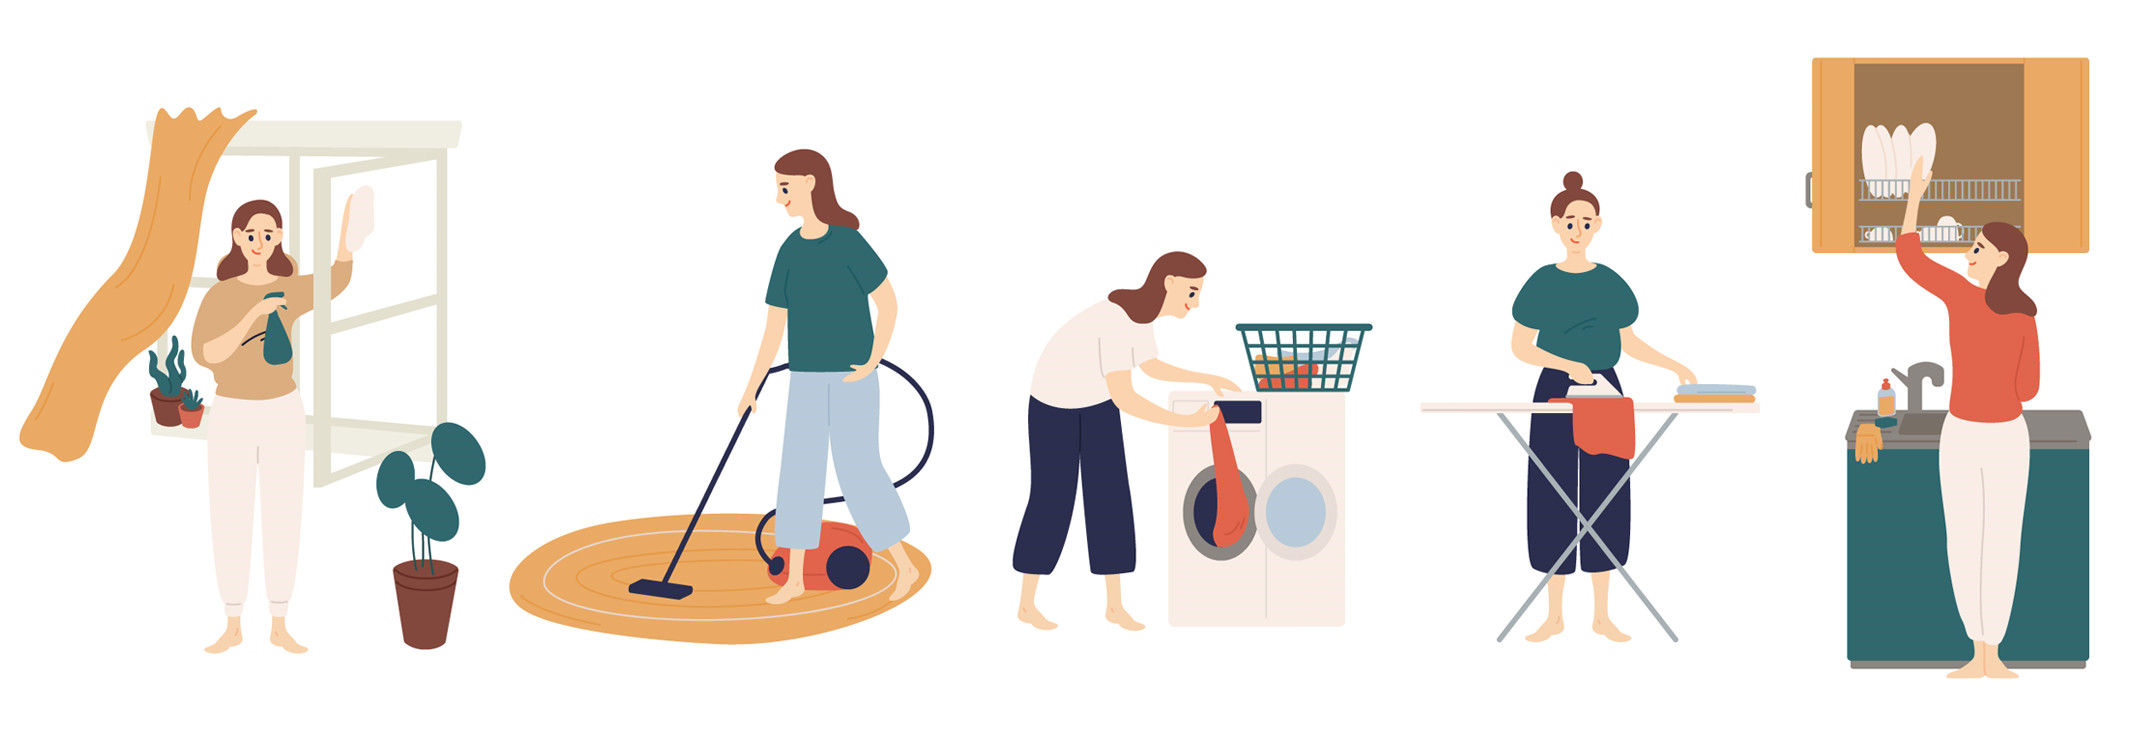 Illustrations of various cleaning tasks, such as washing windows, vacuuming, etc.